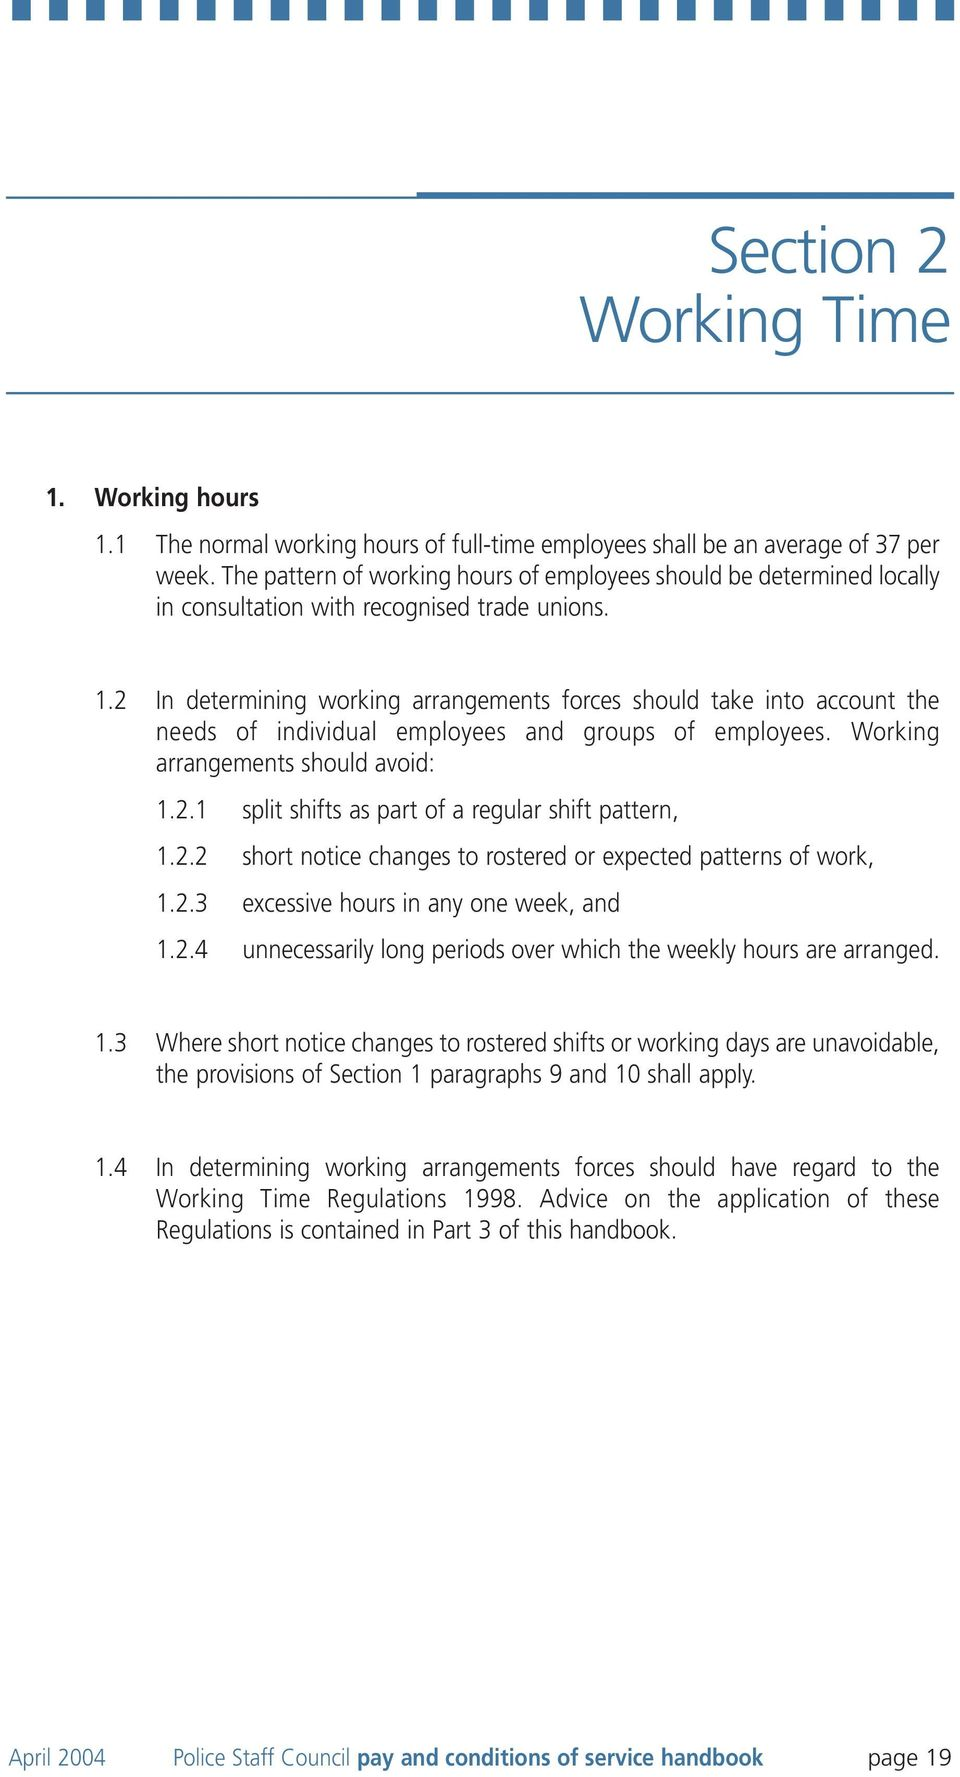 2 In determining working arrangements forces should take into account the needs of individual employees and groups of employees. Working arrangements should avoid: 1.2.1 split shifts as part of a regular shift pattern, 1.